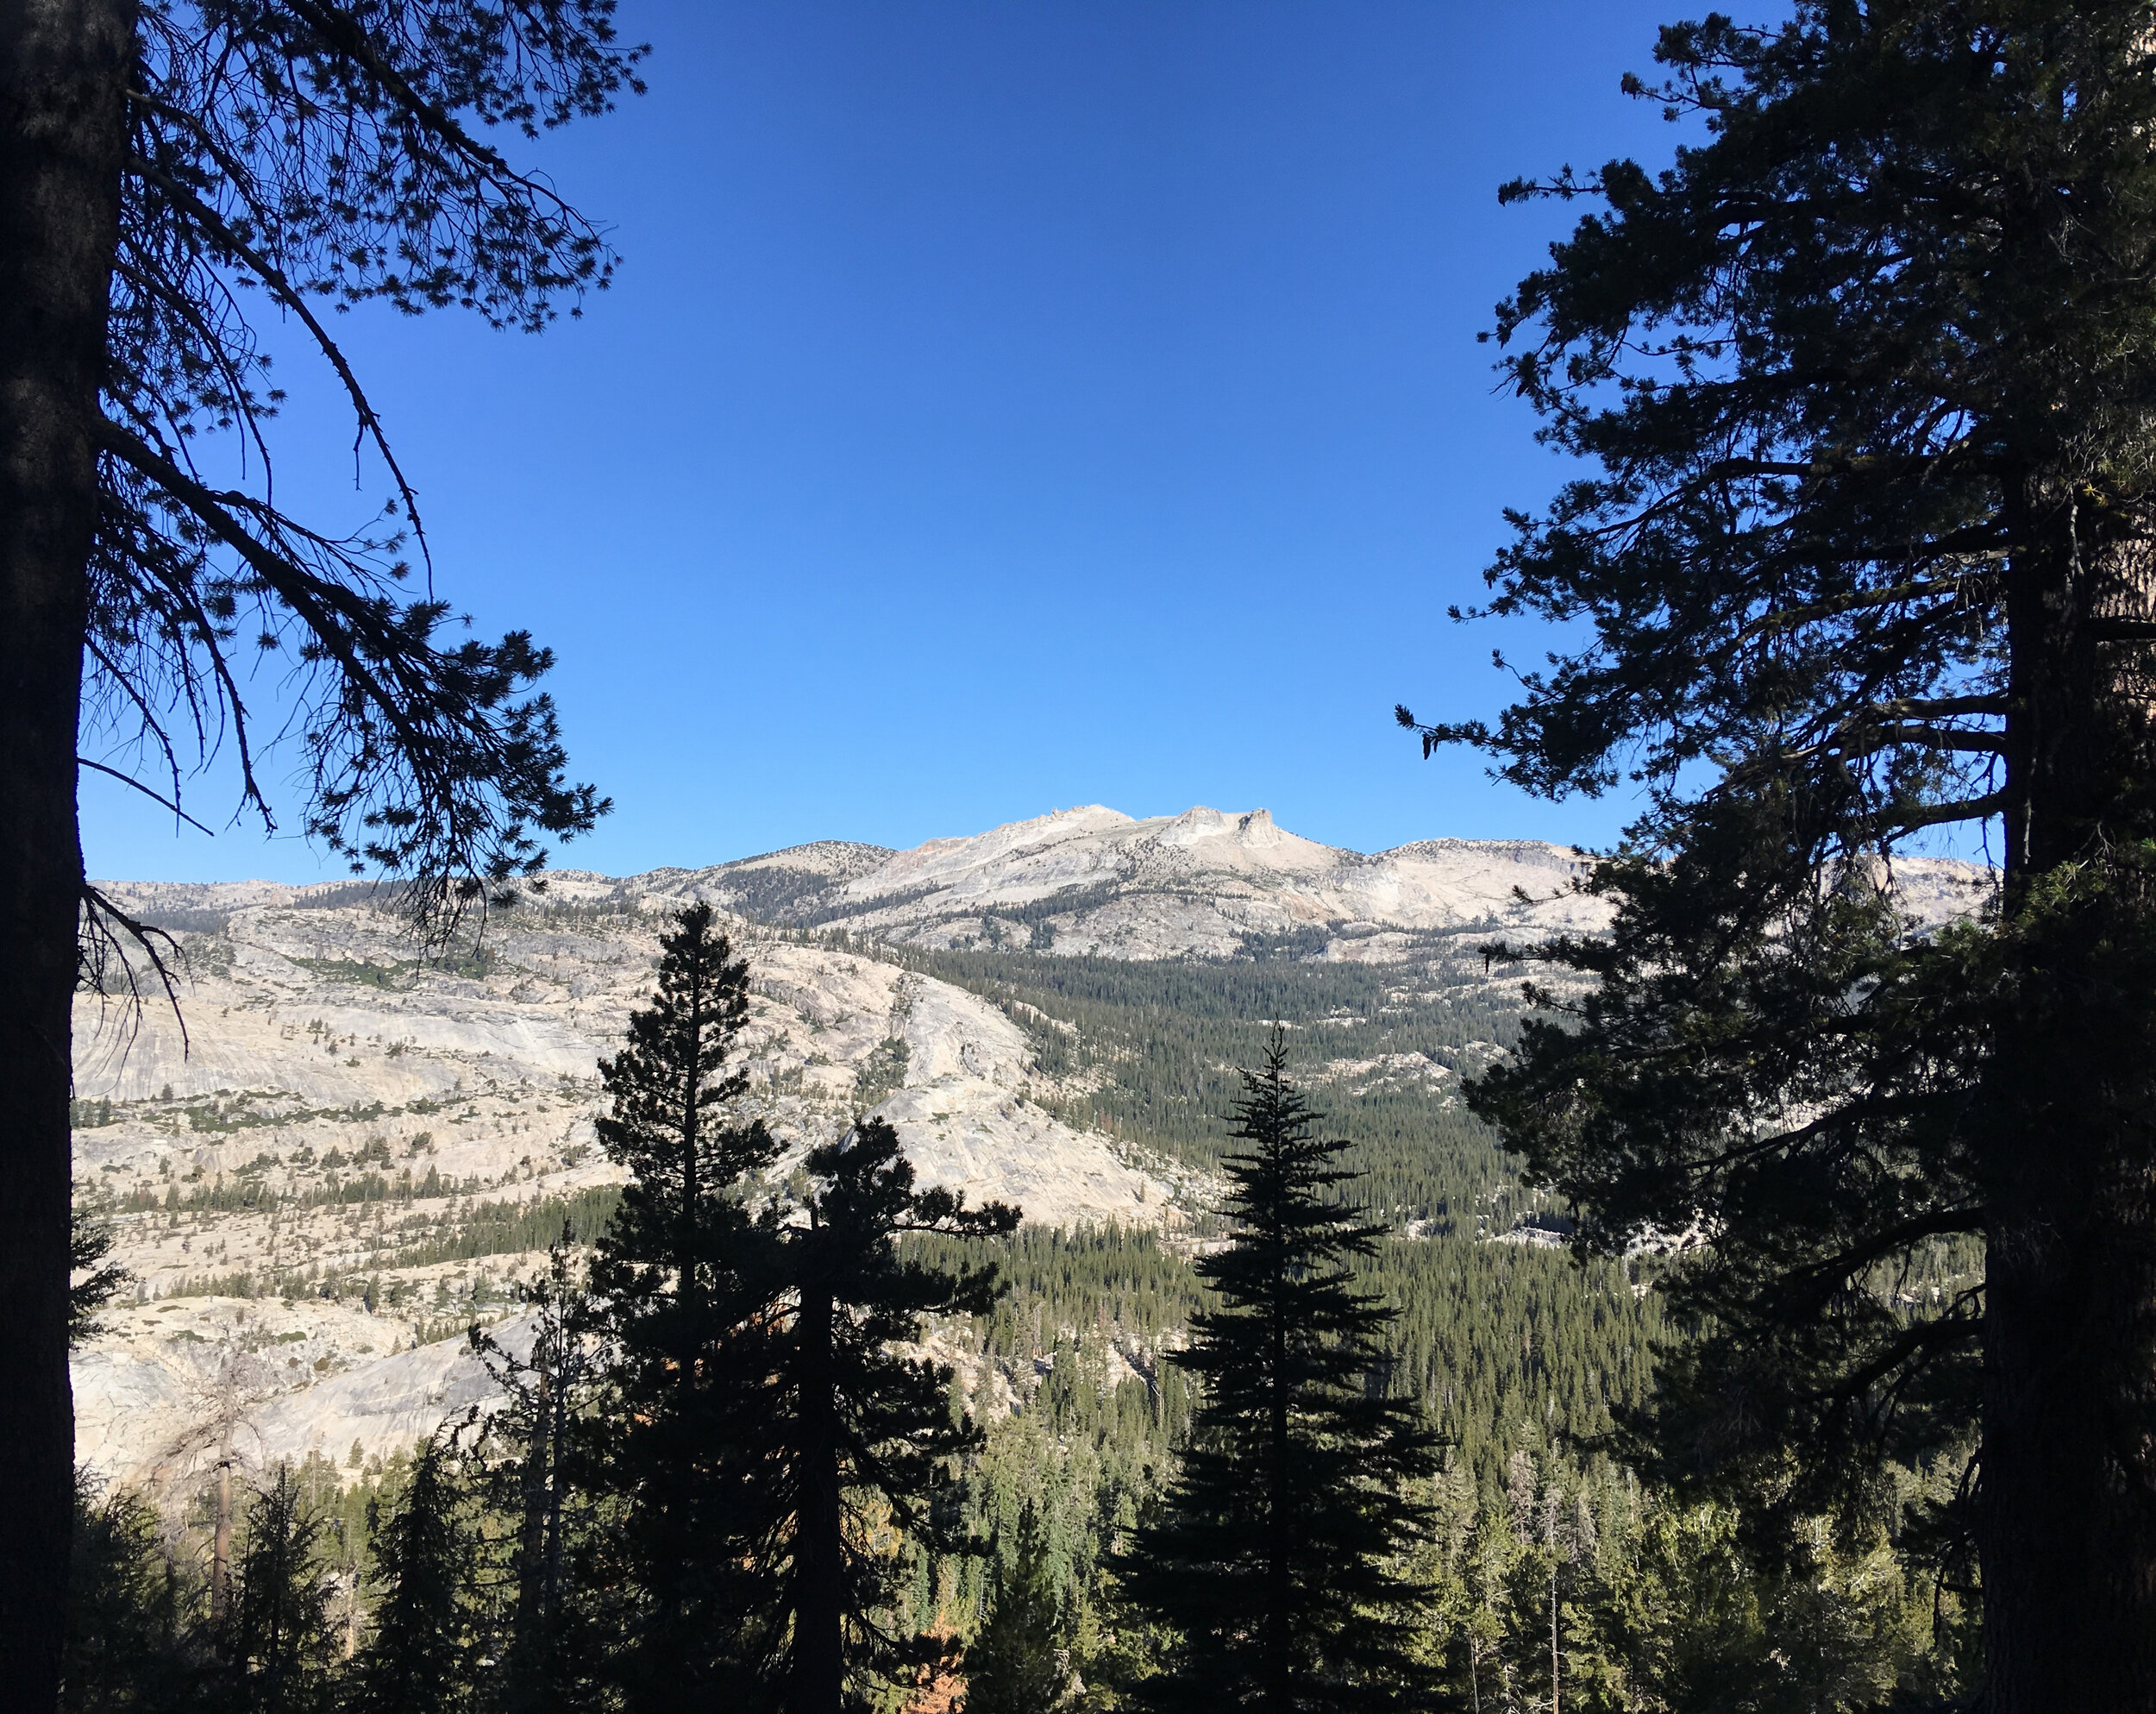 Mount Hoffman - September 2019 - As viewed from the trail to Clouds Rest